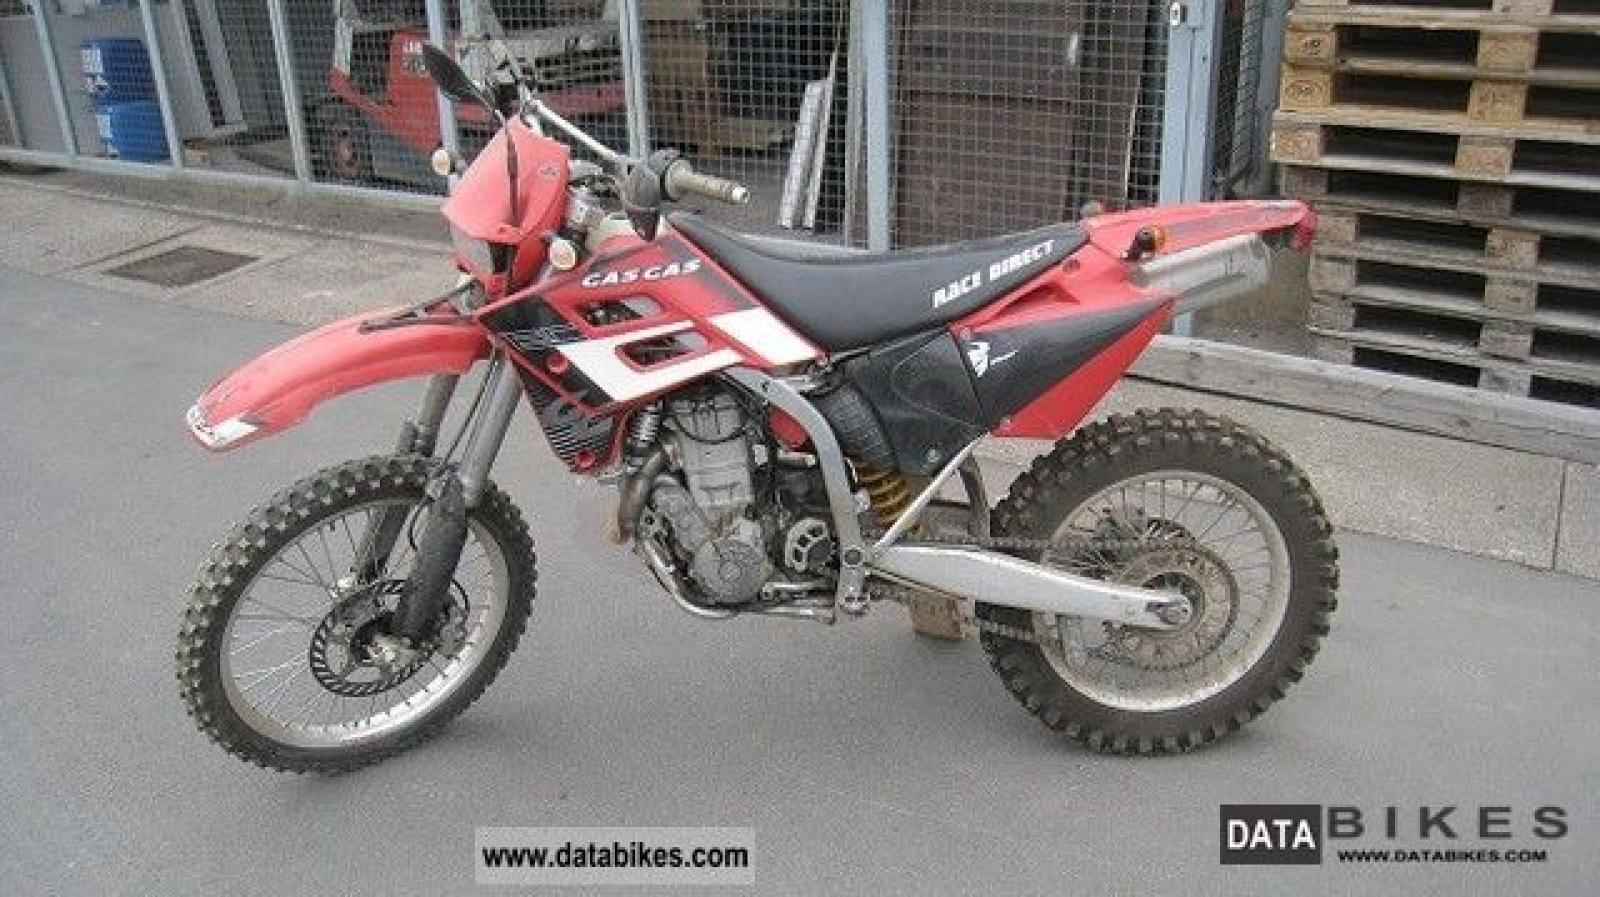 GAS GAS SM 450 2004 images #71271